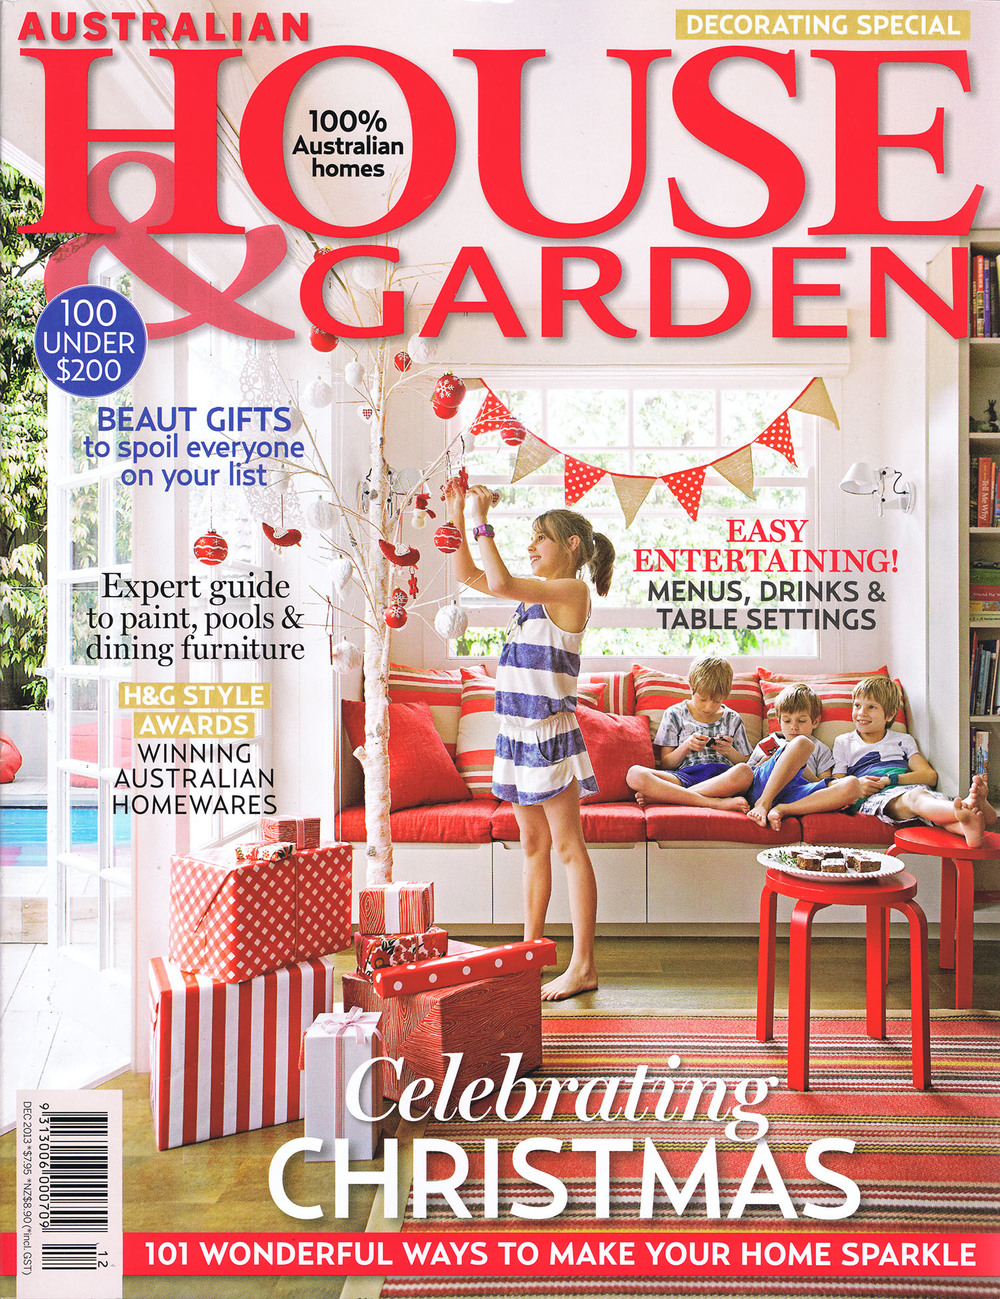 House-and-Garden-December-2013-Cover.jpg